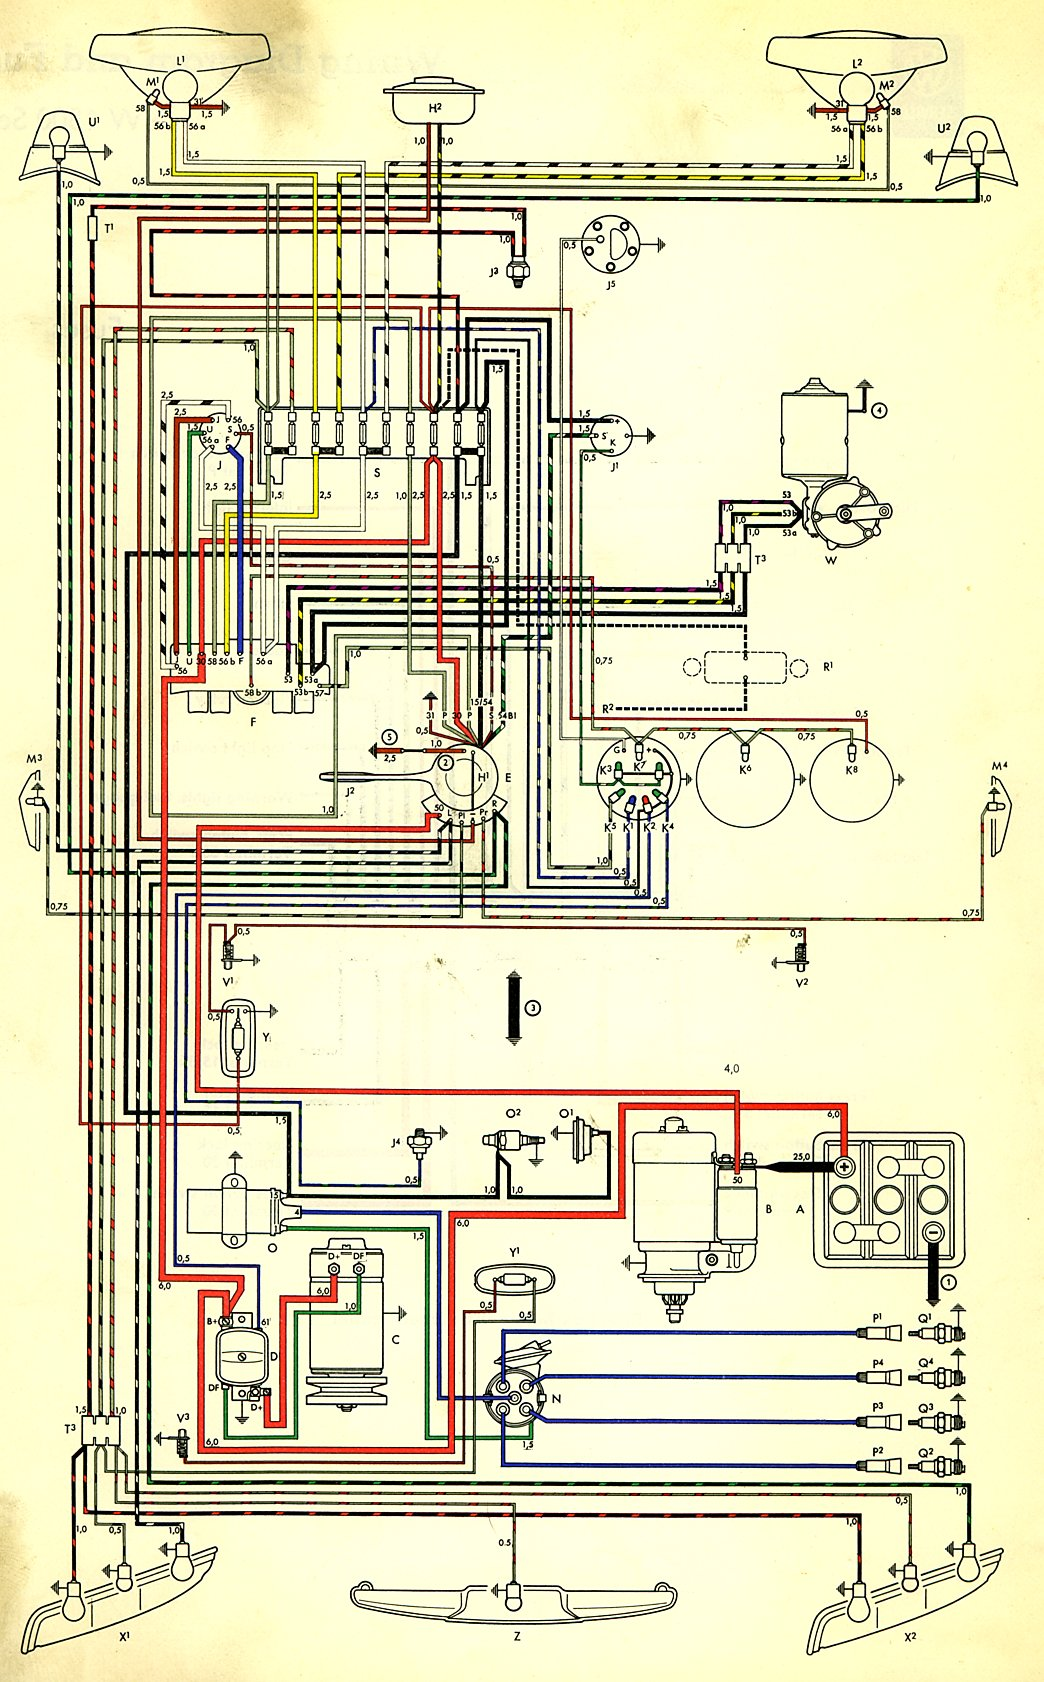 Type on Hard Drive Motor Wiring Diagram